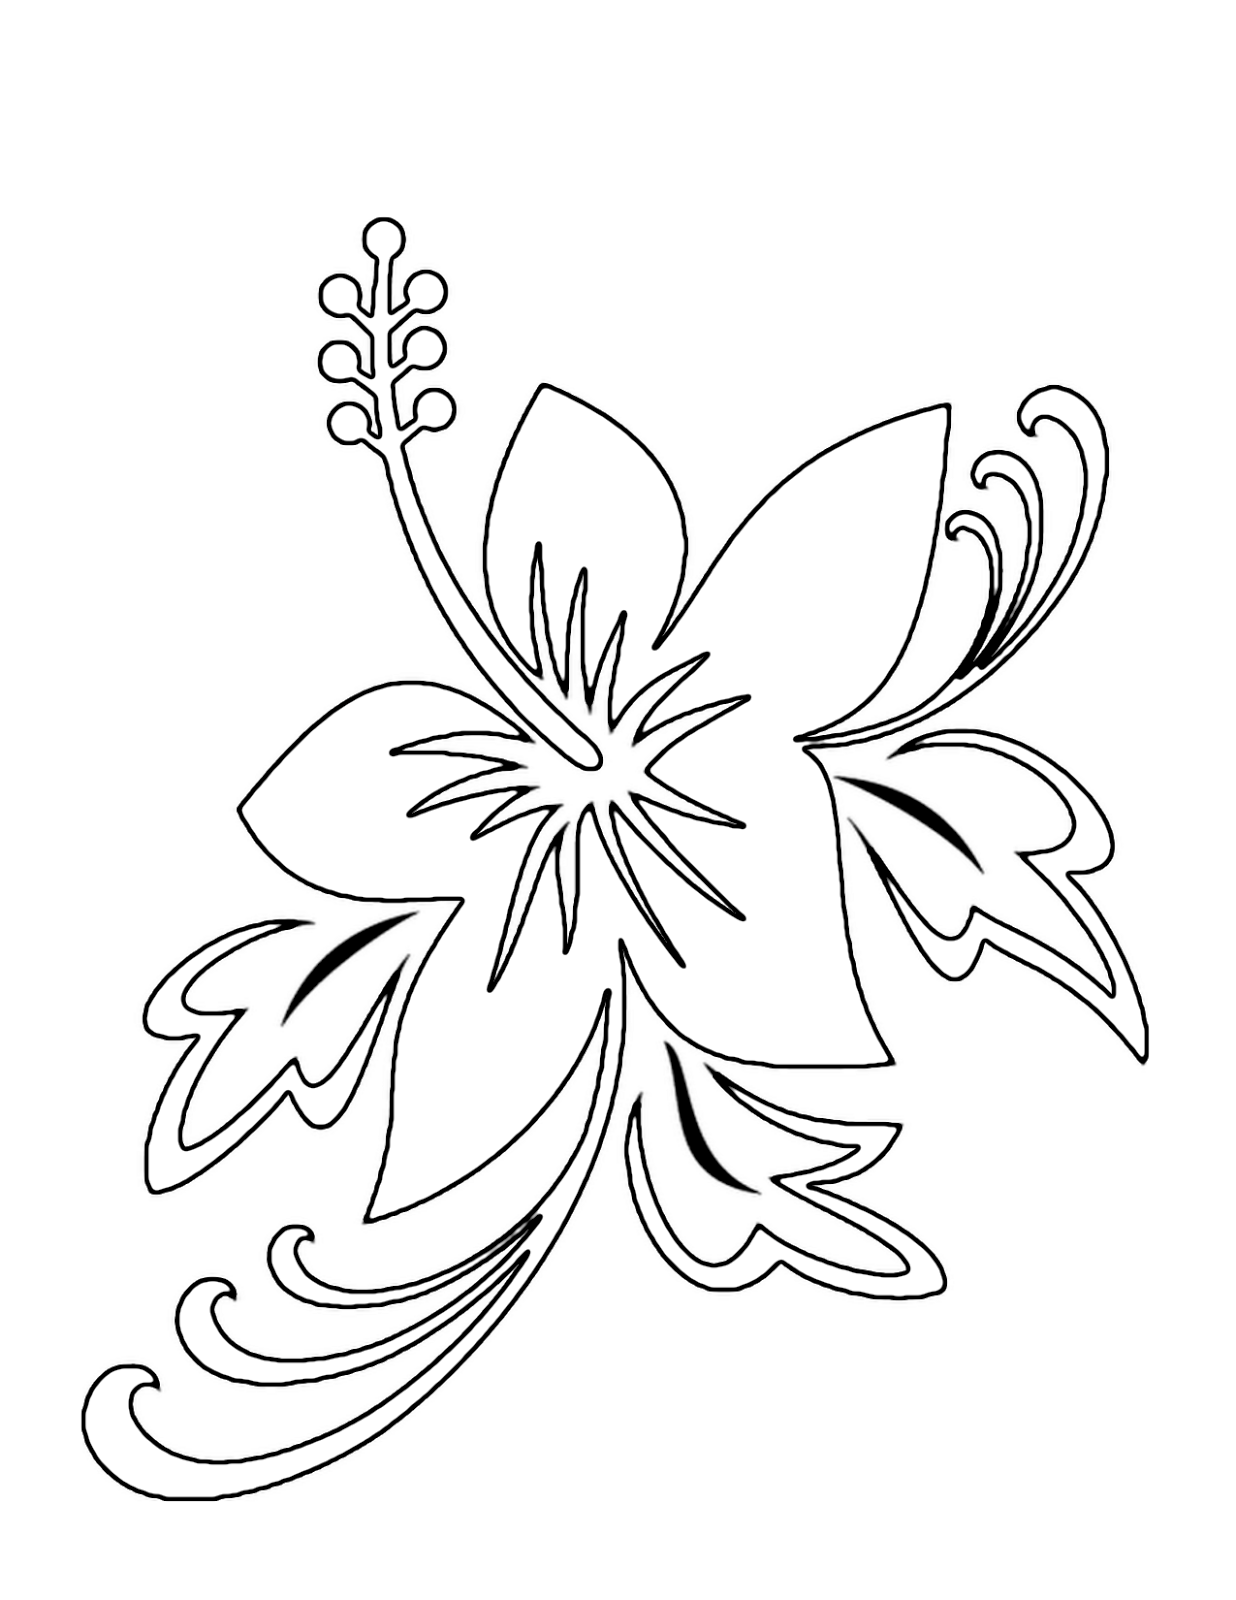 pictures of flowers coloring pages - Flower Coloring Pages (Printable)